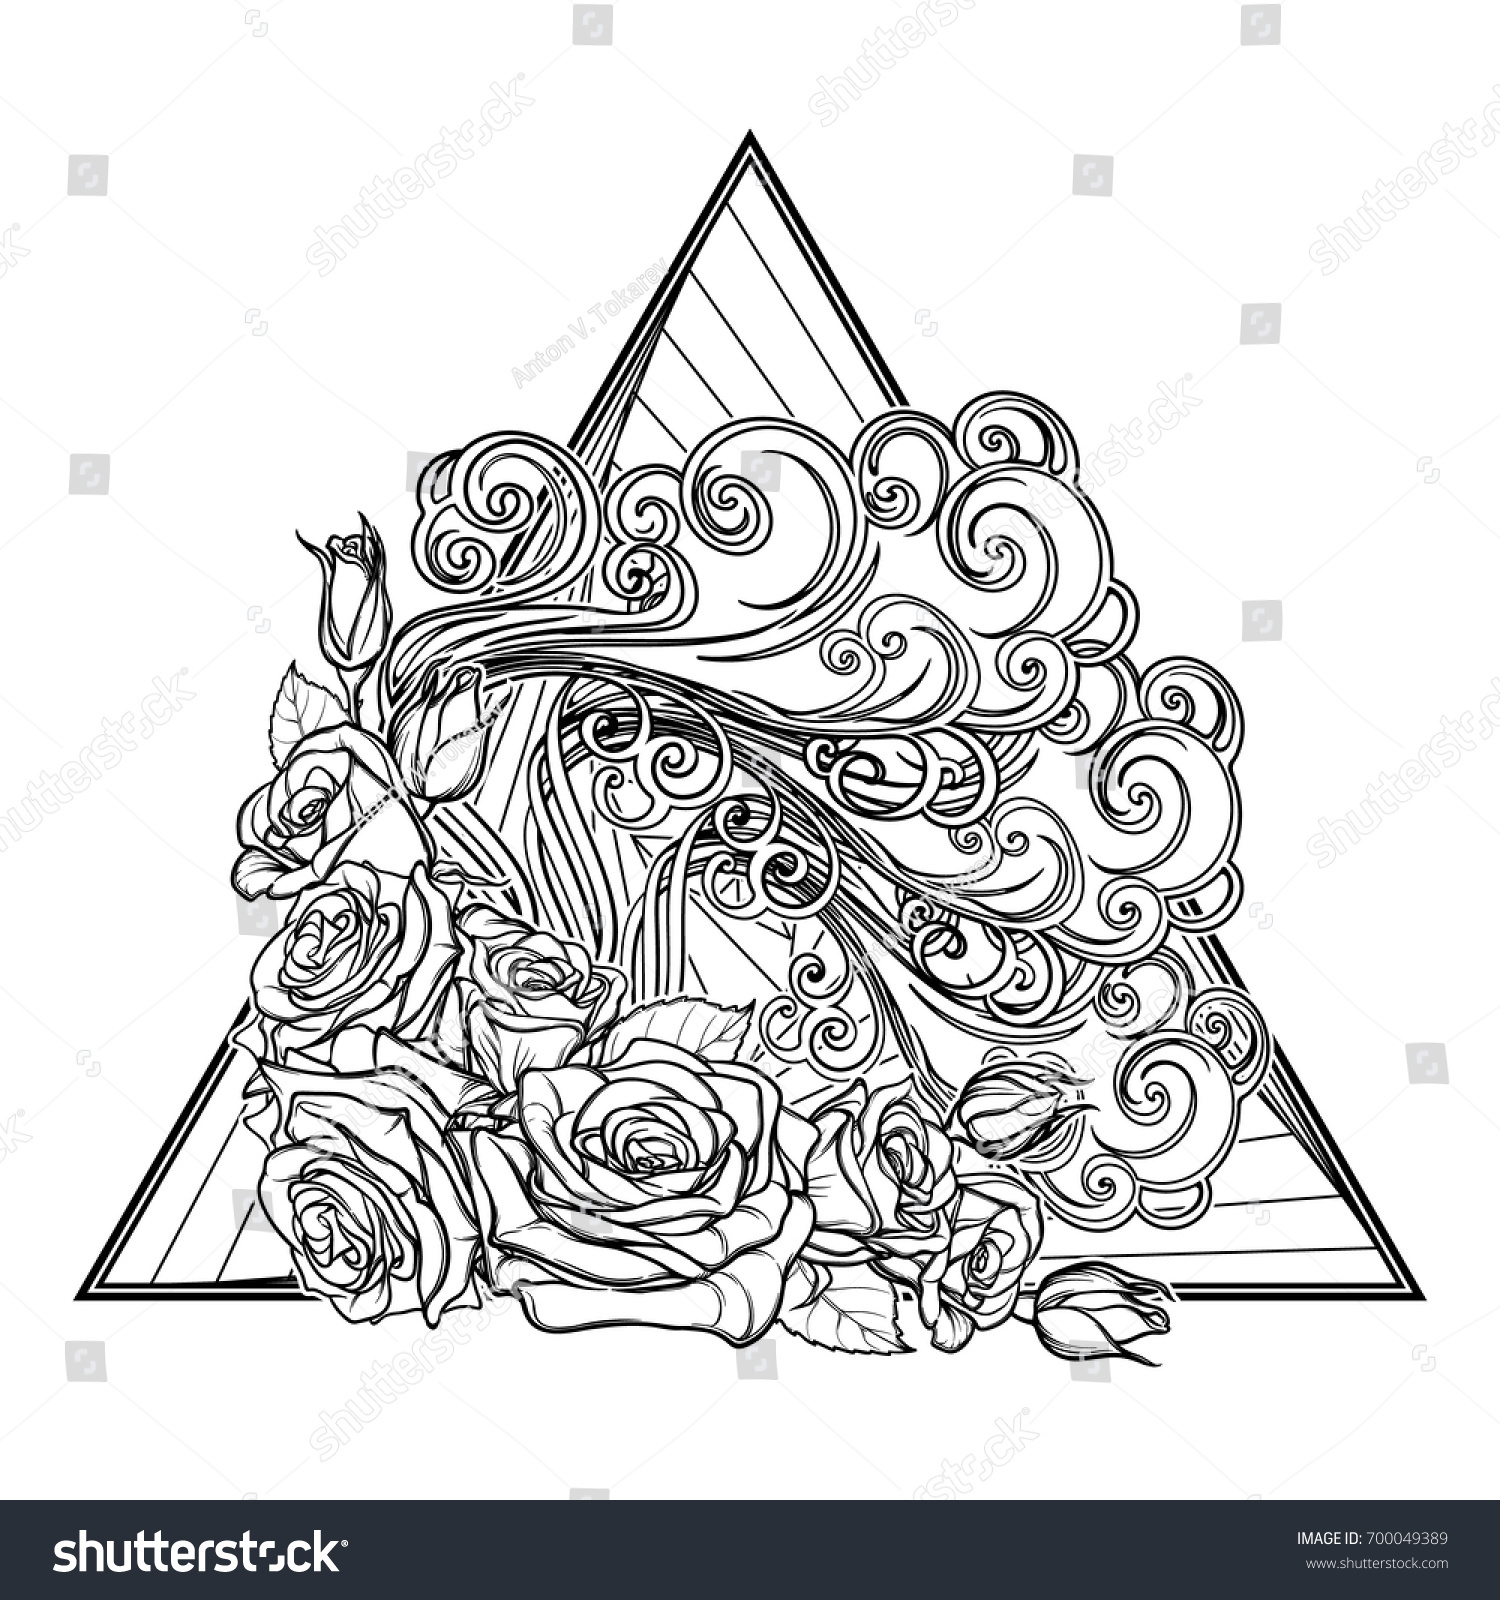 Air symbol tattoo images for tatouage air symbol tattoo for astrology symbol air element decorative vignette stock vector buycottarizona Images